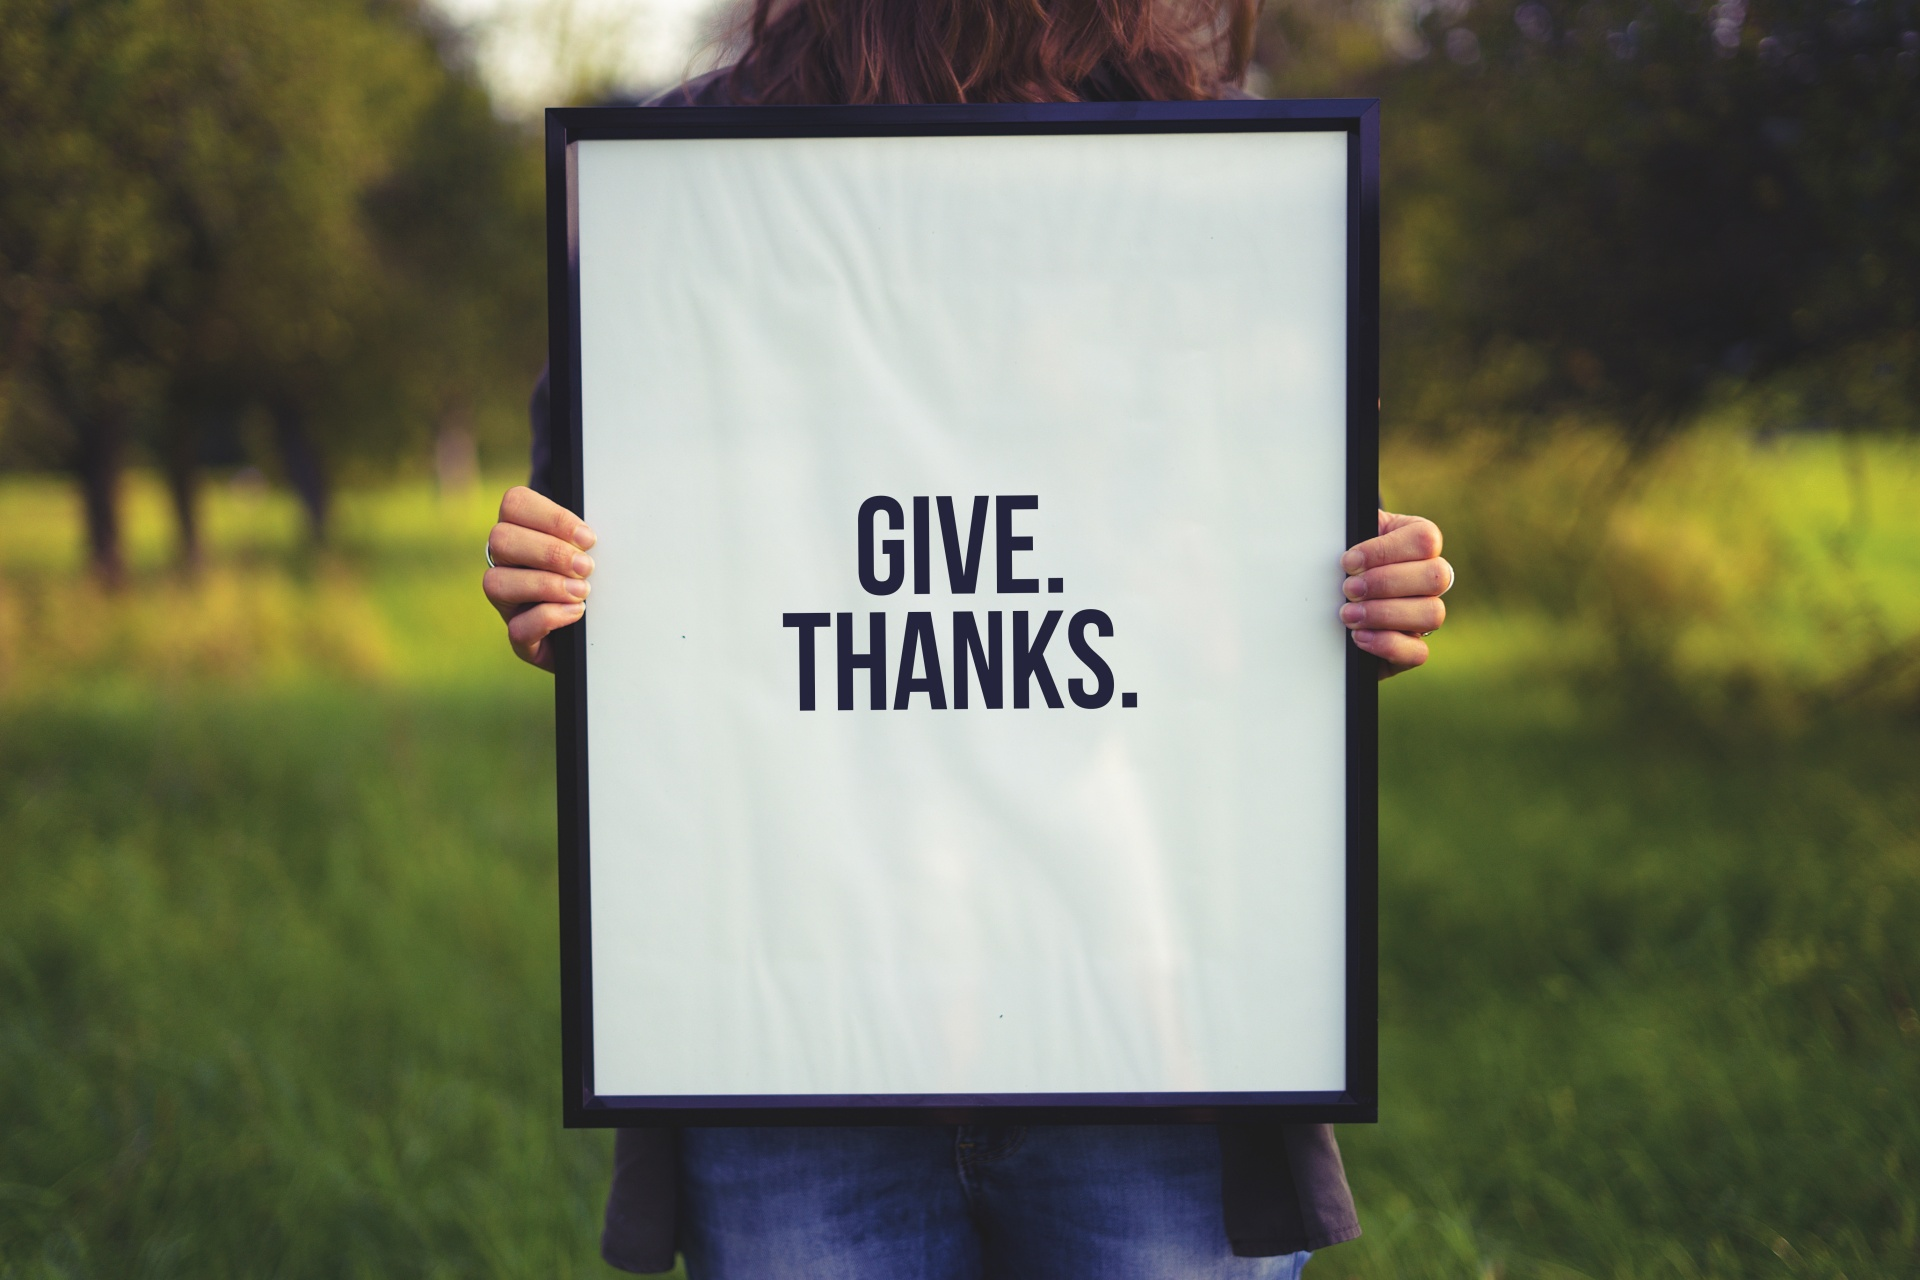 """A woman holds up a sign that says """"Give. Thanks."""""""